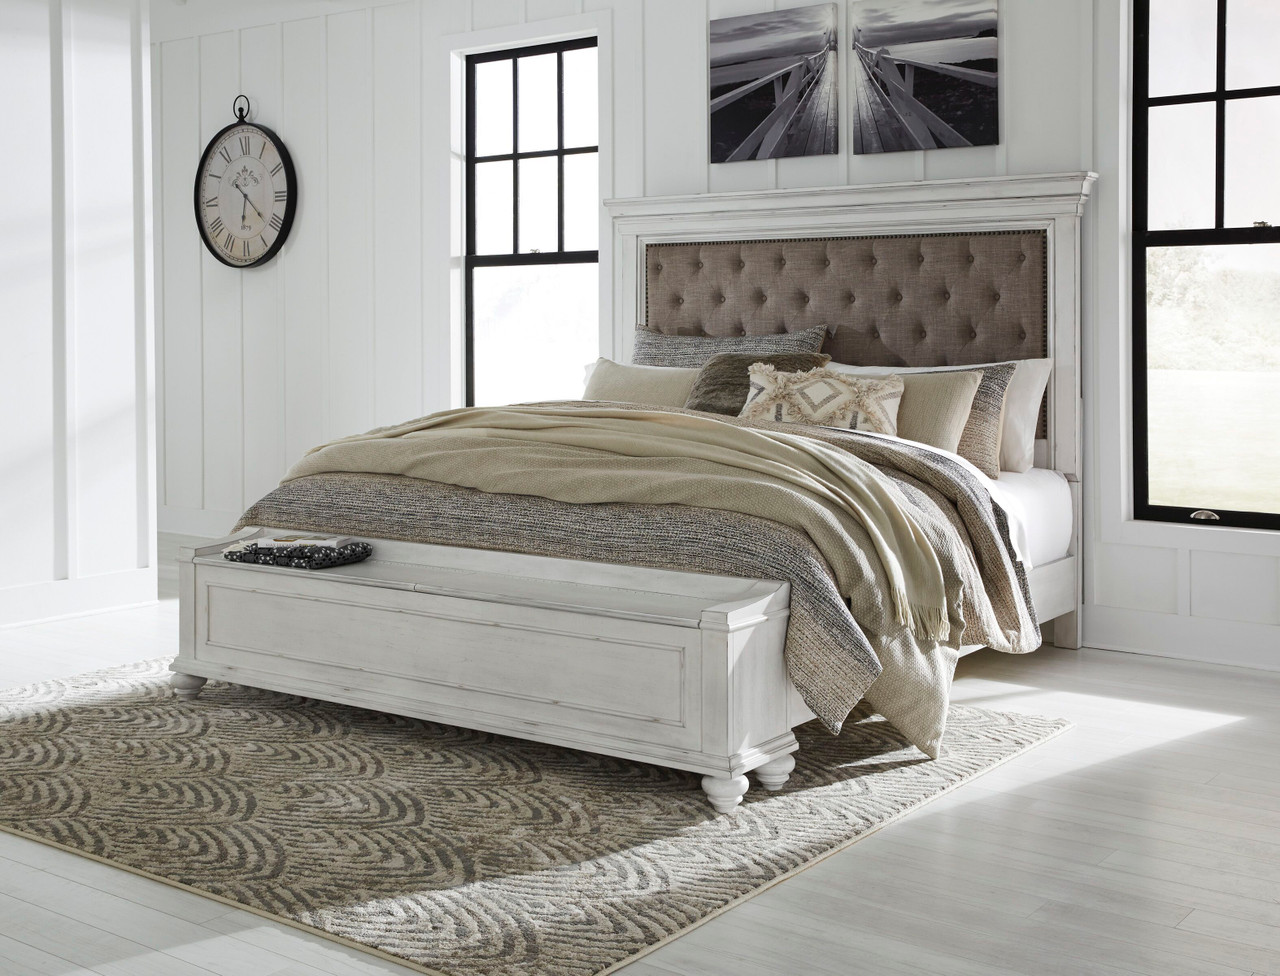 The Kanwyn Whitewash King Upholstered Storage Bed Available At Royal Star Furniture Serving St Paul Mn